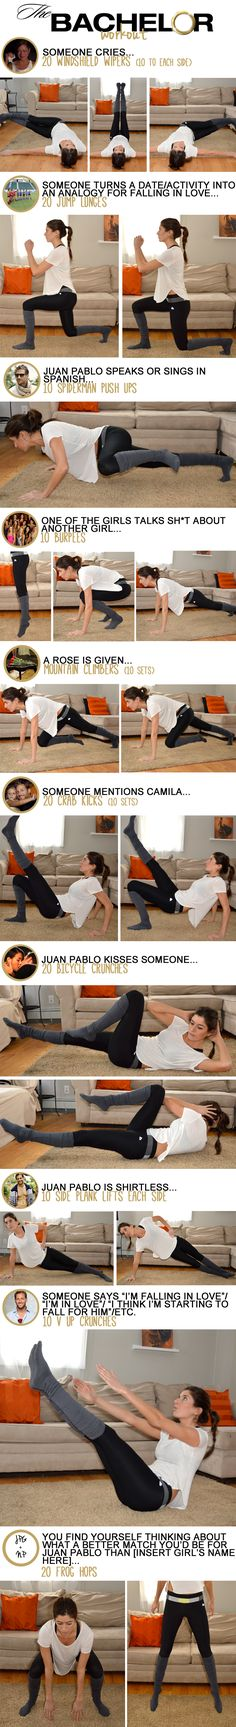 Perfect! And I'd never have to do frog hops because I don't like Juan Pablo